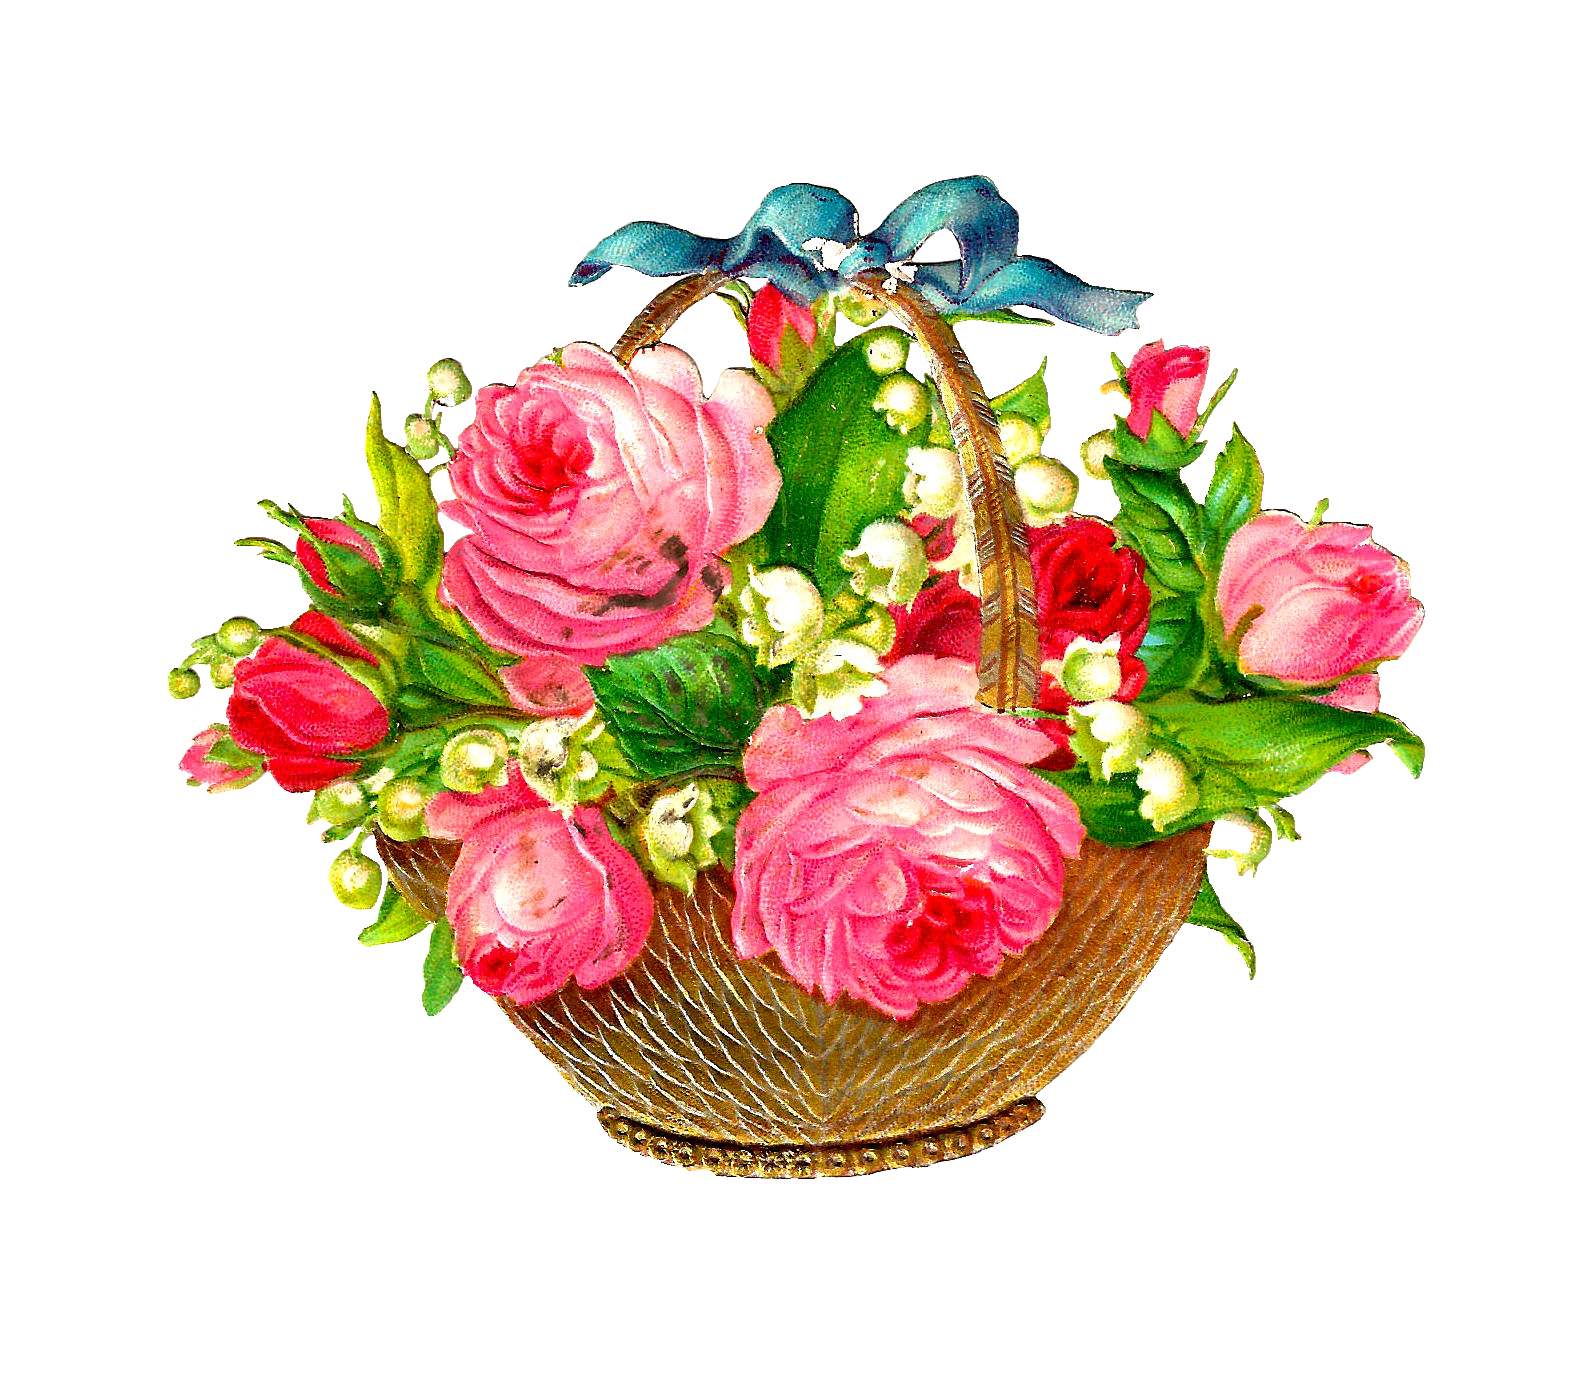 Flower Basket Clipart.